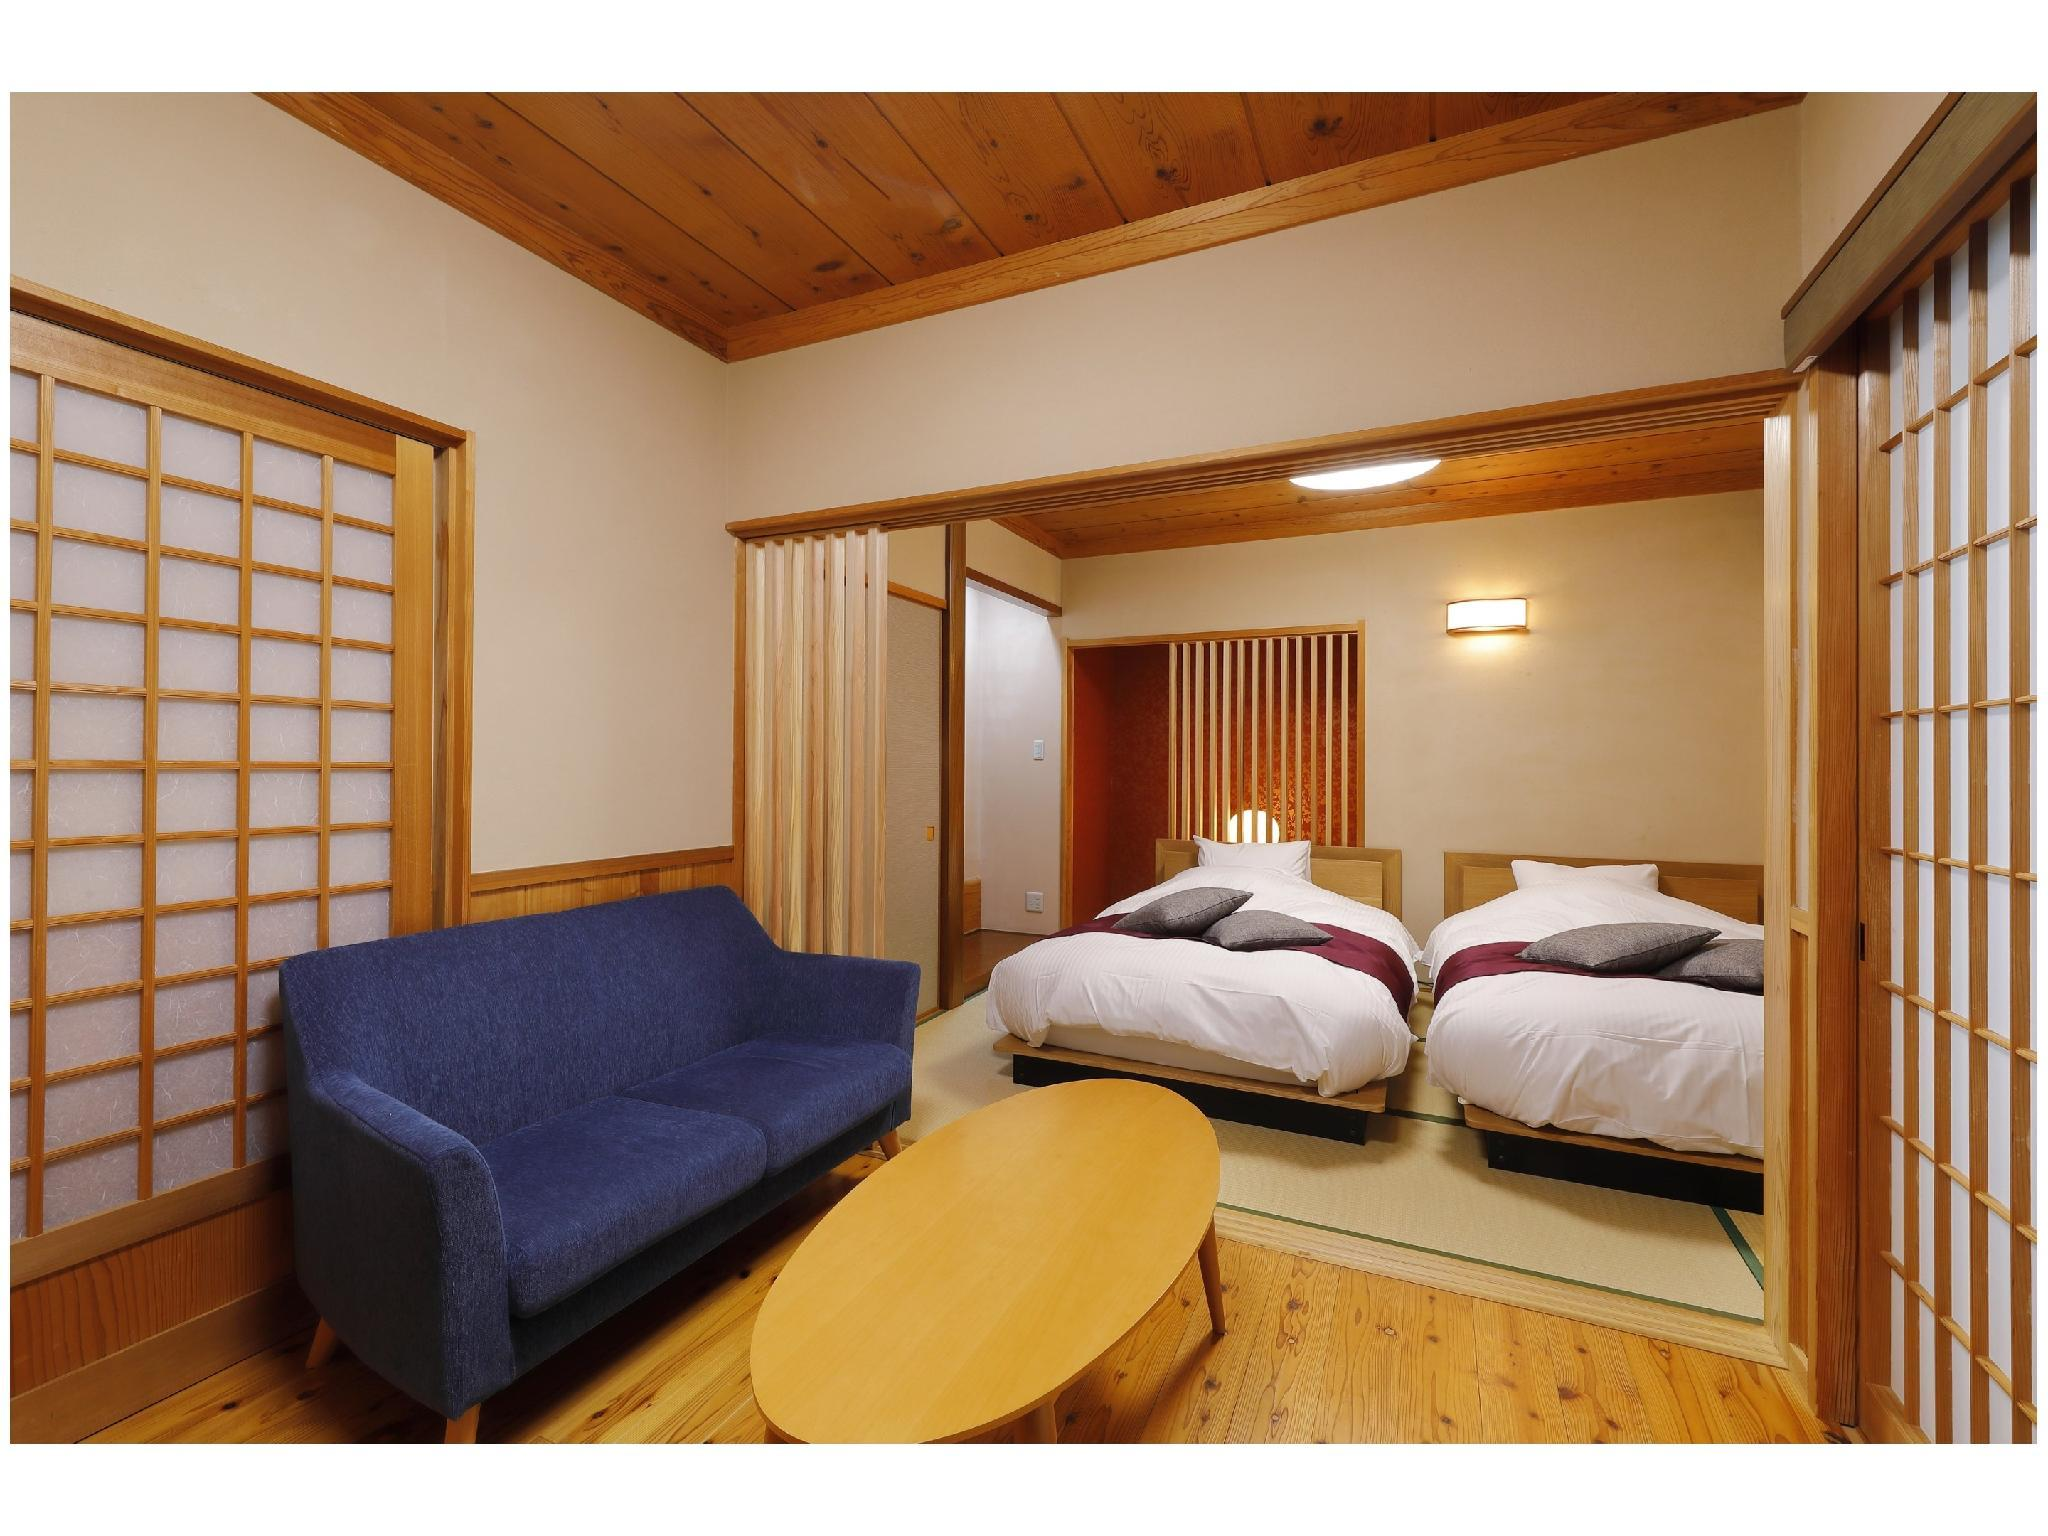 다다미 침대 객실(신관/별채/2베드) (Detached Japanese/Western-style Room (2 Beds, New Building))